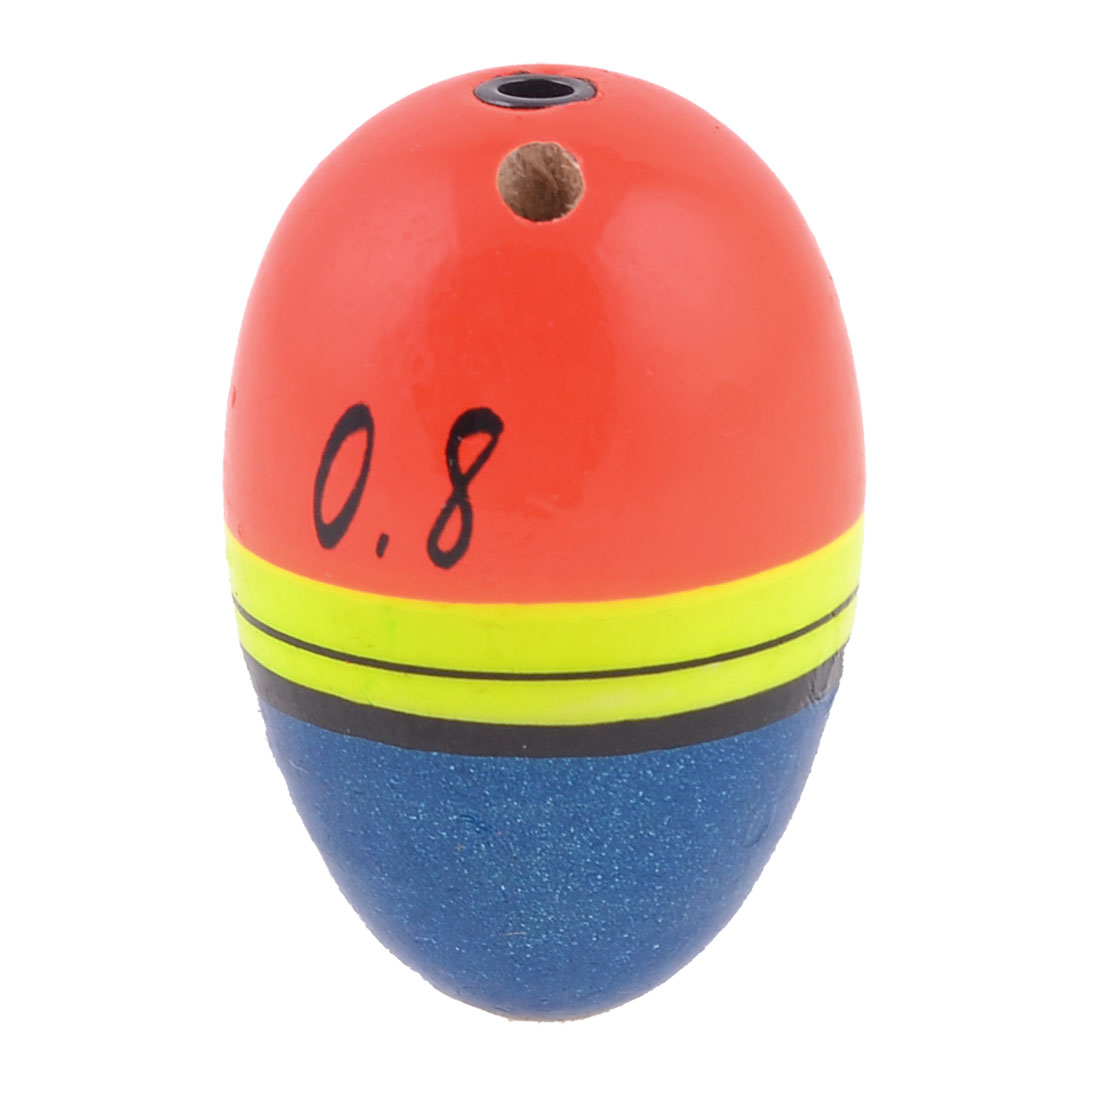 Fish Colorful Oval Plastic Fishing Tackle Floating Bobber 38mm x 25mm